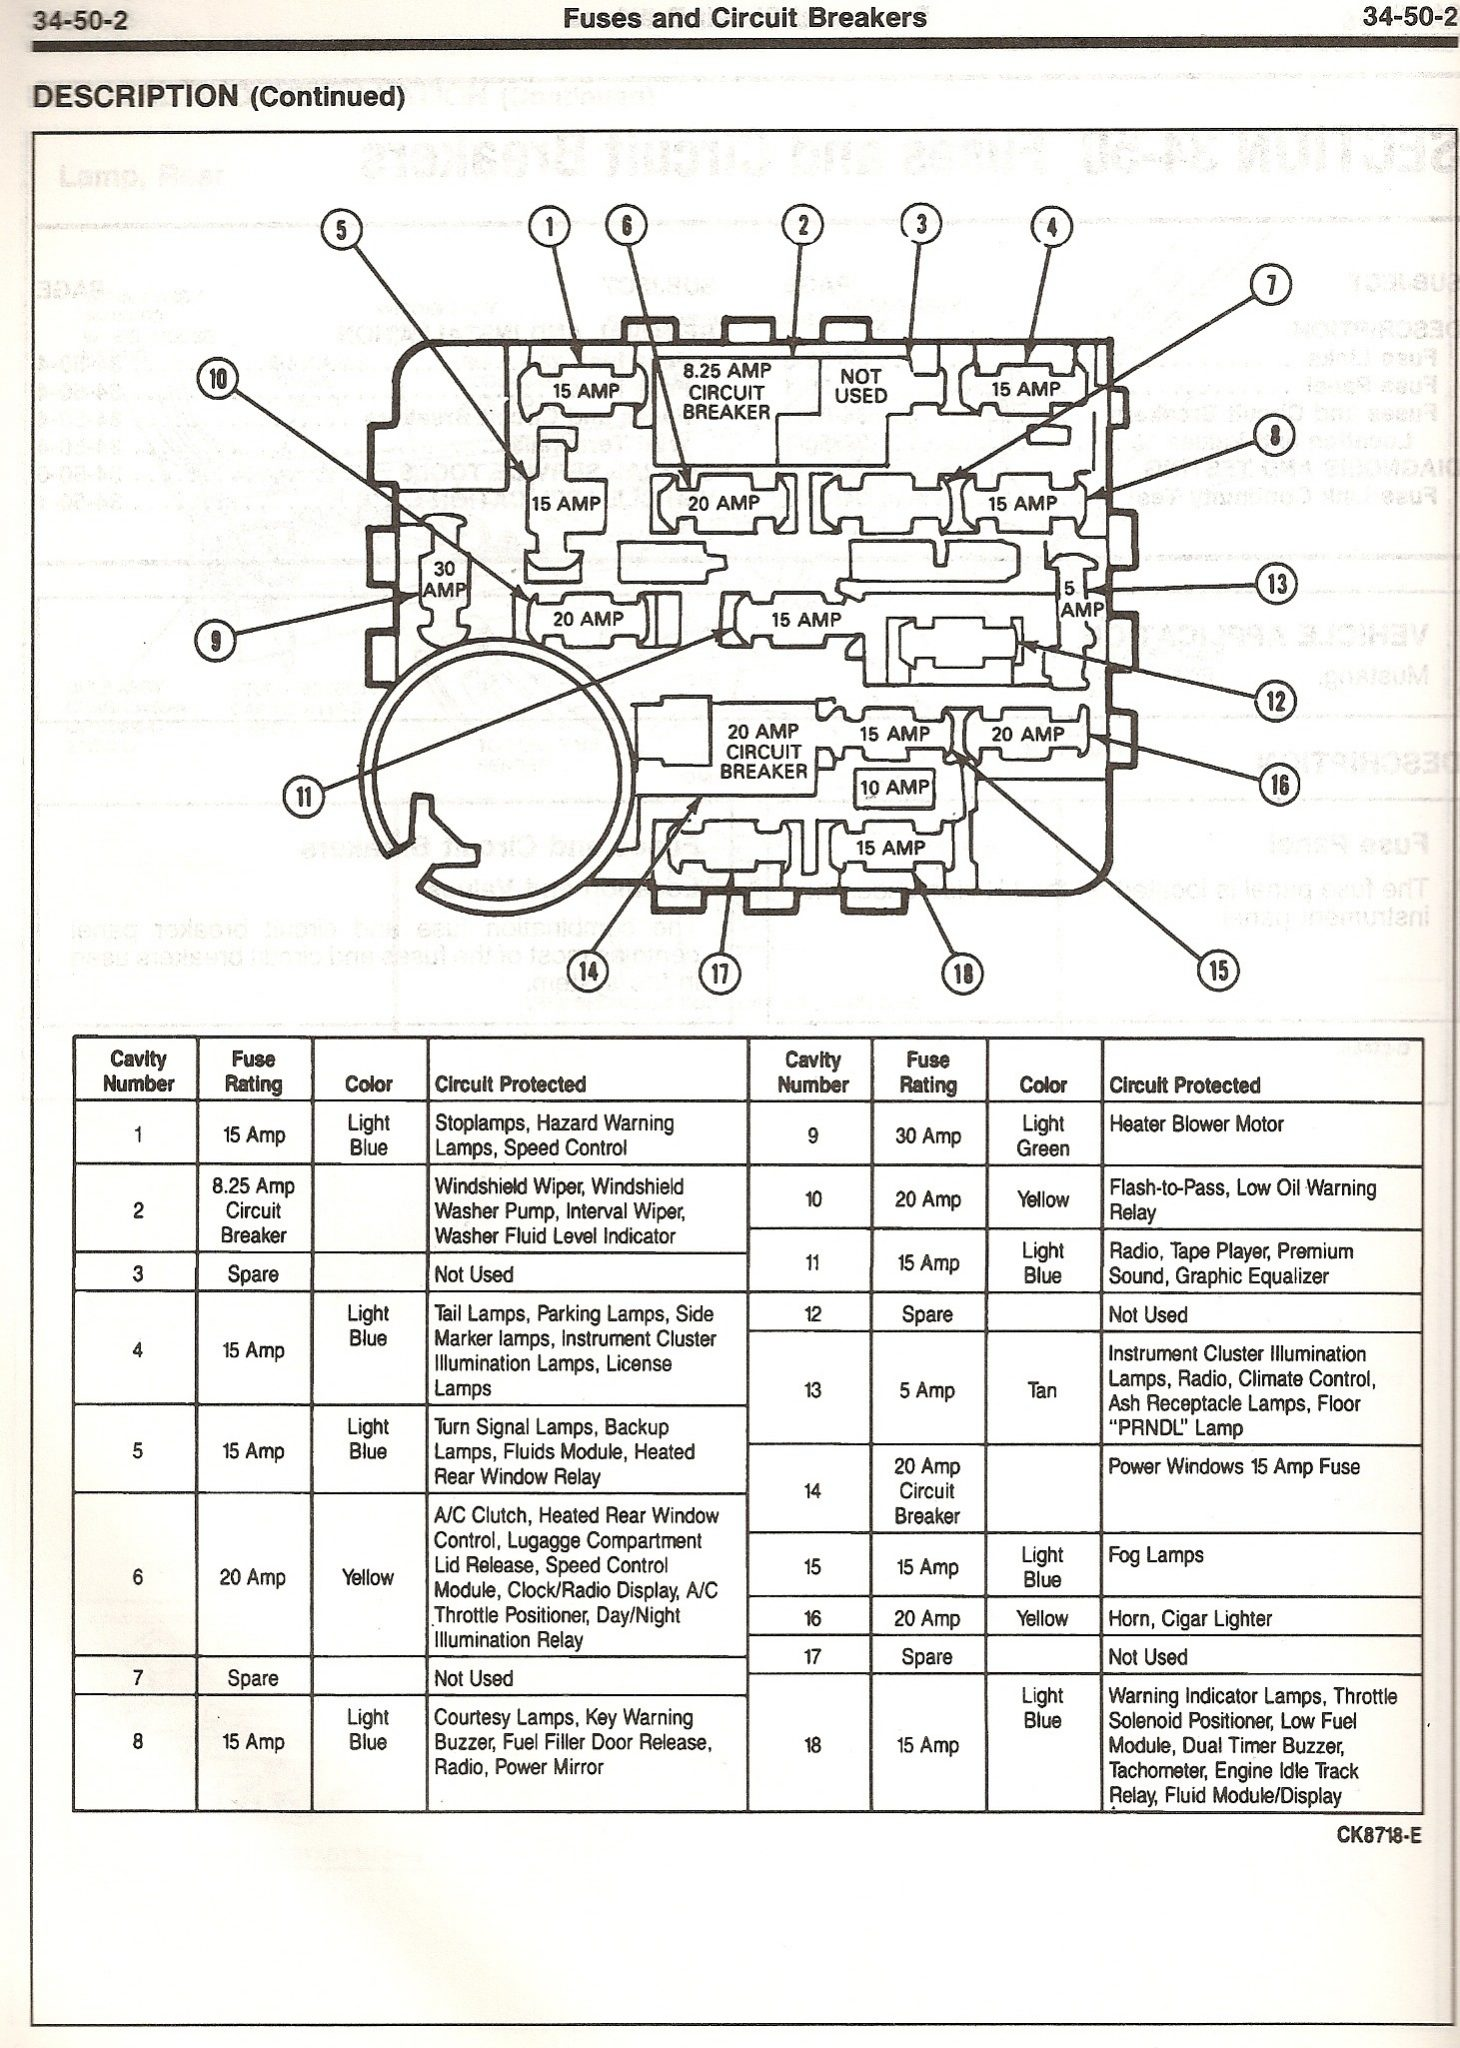 1990 2.3L Mustang Engine Bay Fuse Diagram